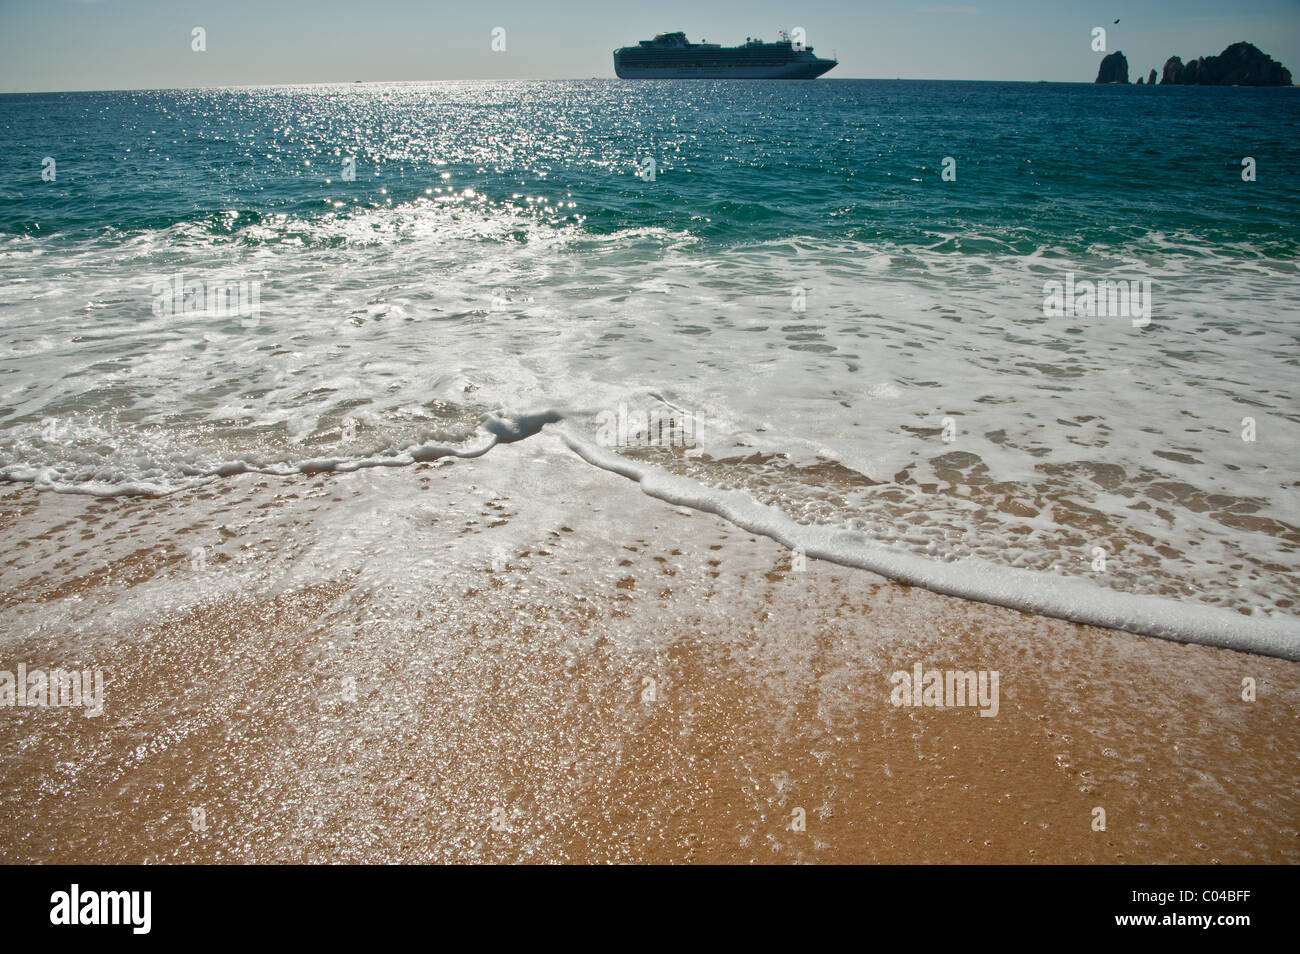 Gentle waves crushing up a  tropical sandy beach with a cruise ship in the background - Stock Image